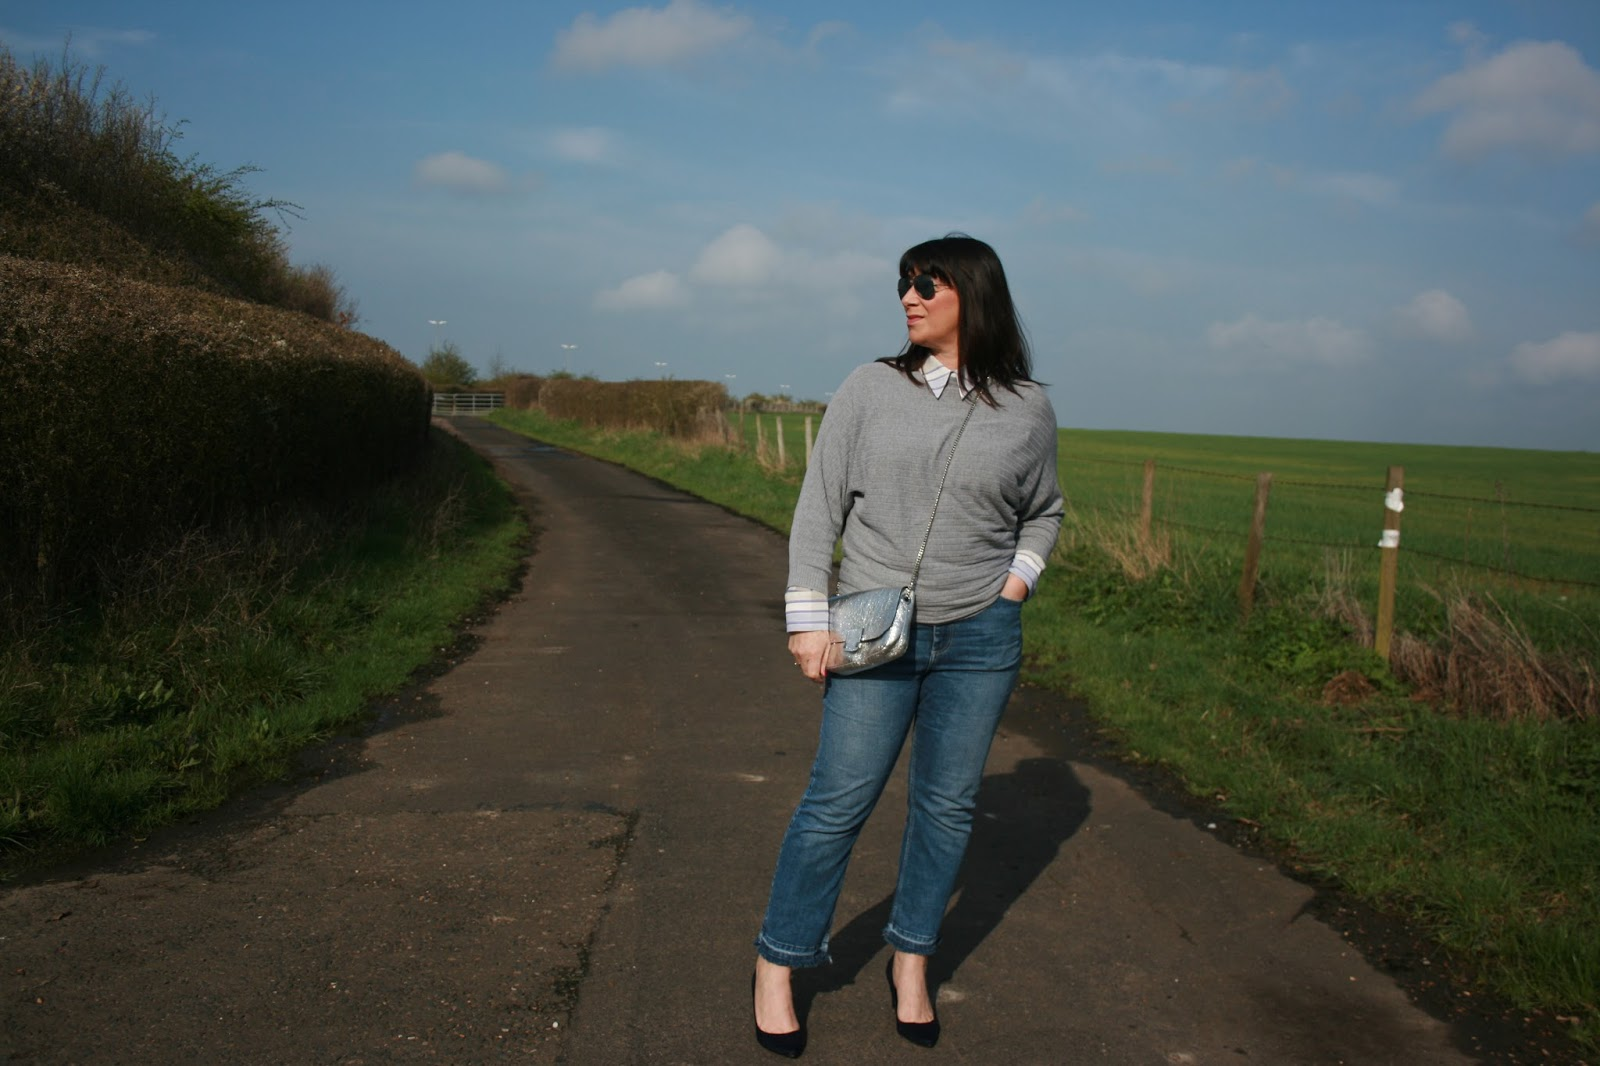 Over 50s blogger Jacqui Berry from Mummabstylish styles a white and lilac blouse three ways, along with blogger Gail Hanlon from Is This Mutton?